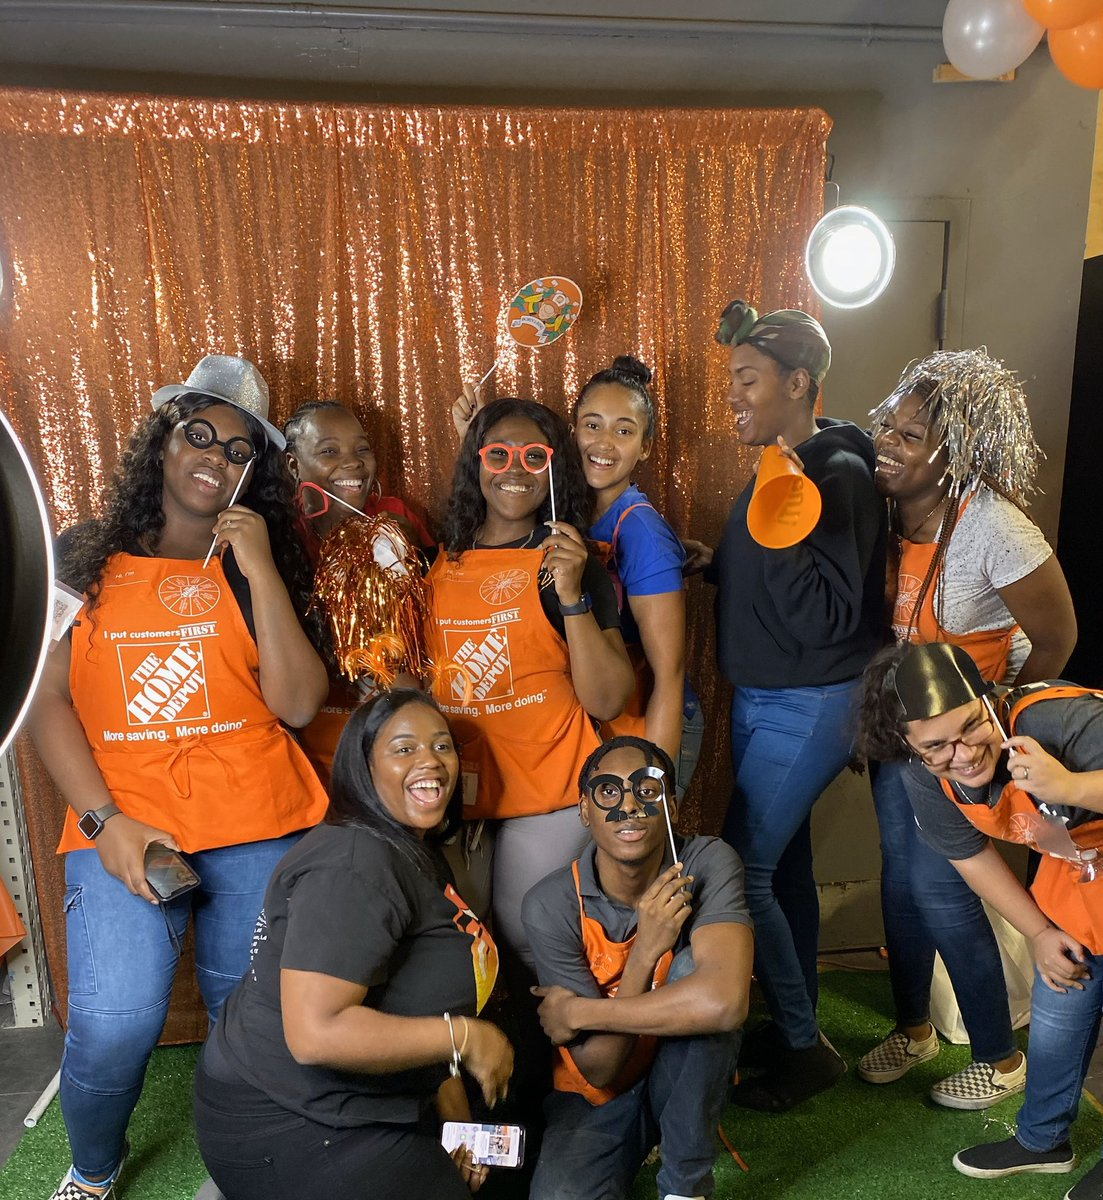 The strength of the team is each member. The strength of each member is the team. #Bedstuy  #Frontend #D90 #Cashiers #Headcashiers #PersonalityPicture @Nap716 @leosantiago0 @shervanw @TierraJ329 @lexxxi427 @perrelli405pic.twitter.com/eiO7lmv3N0